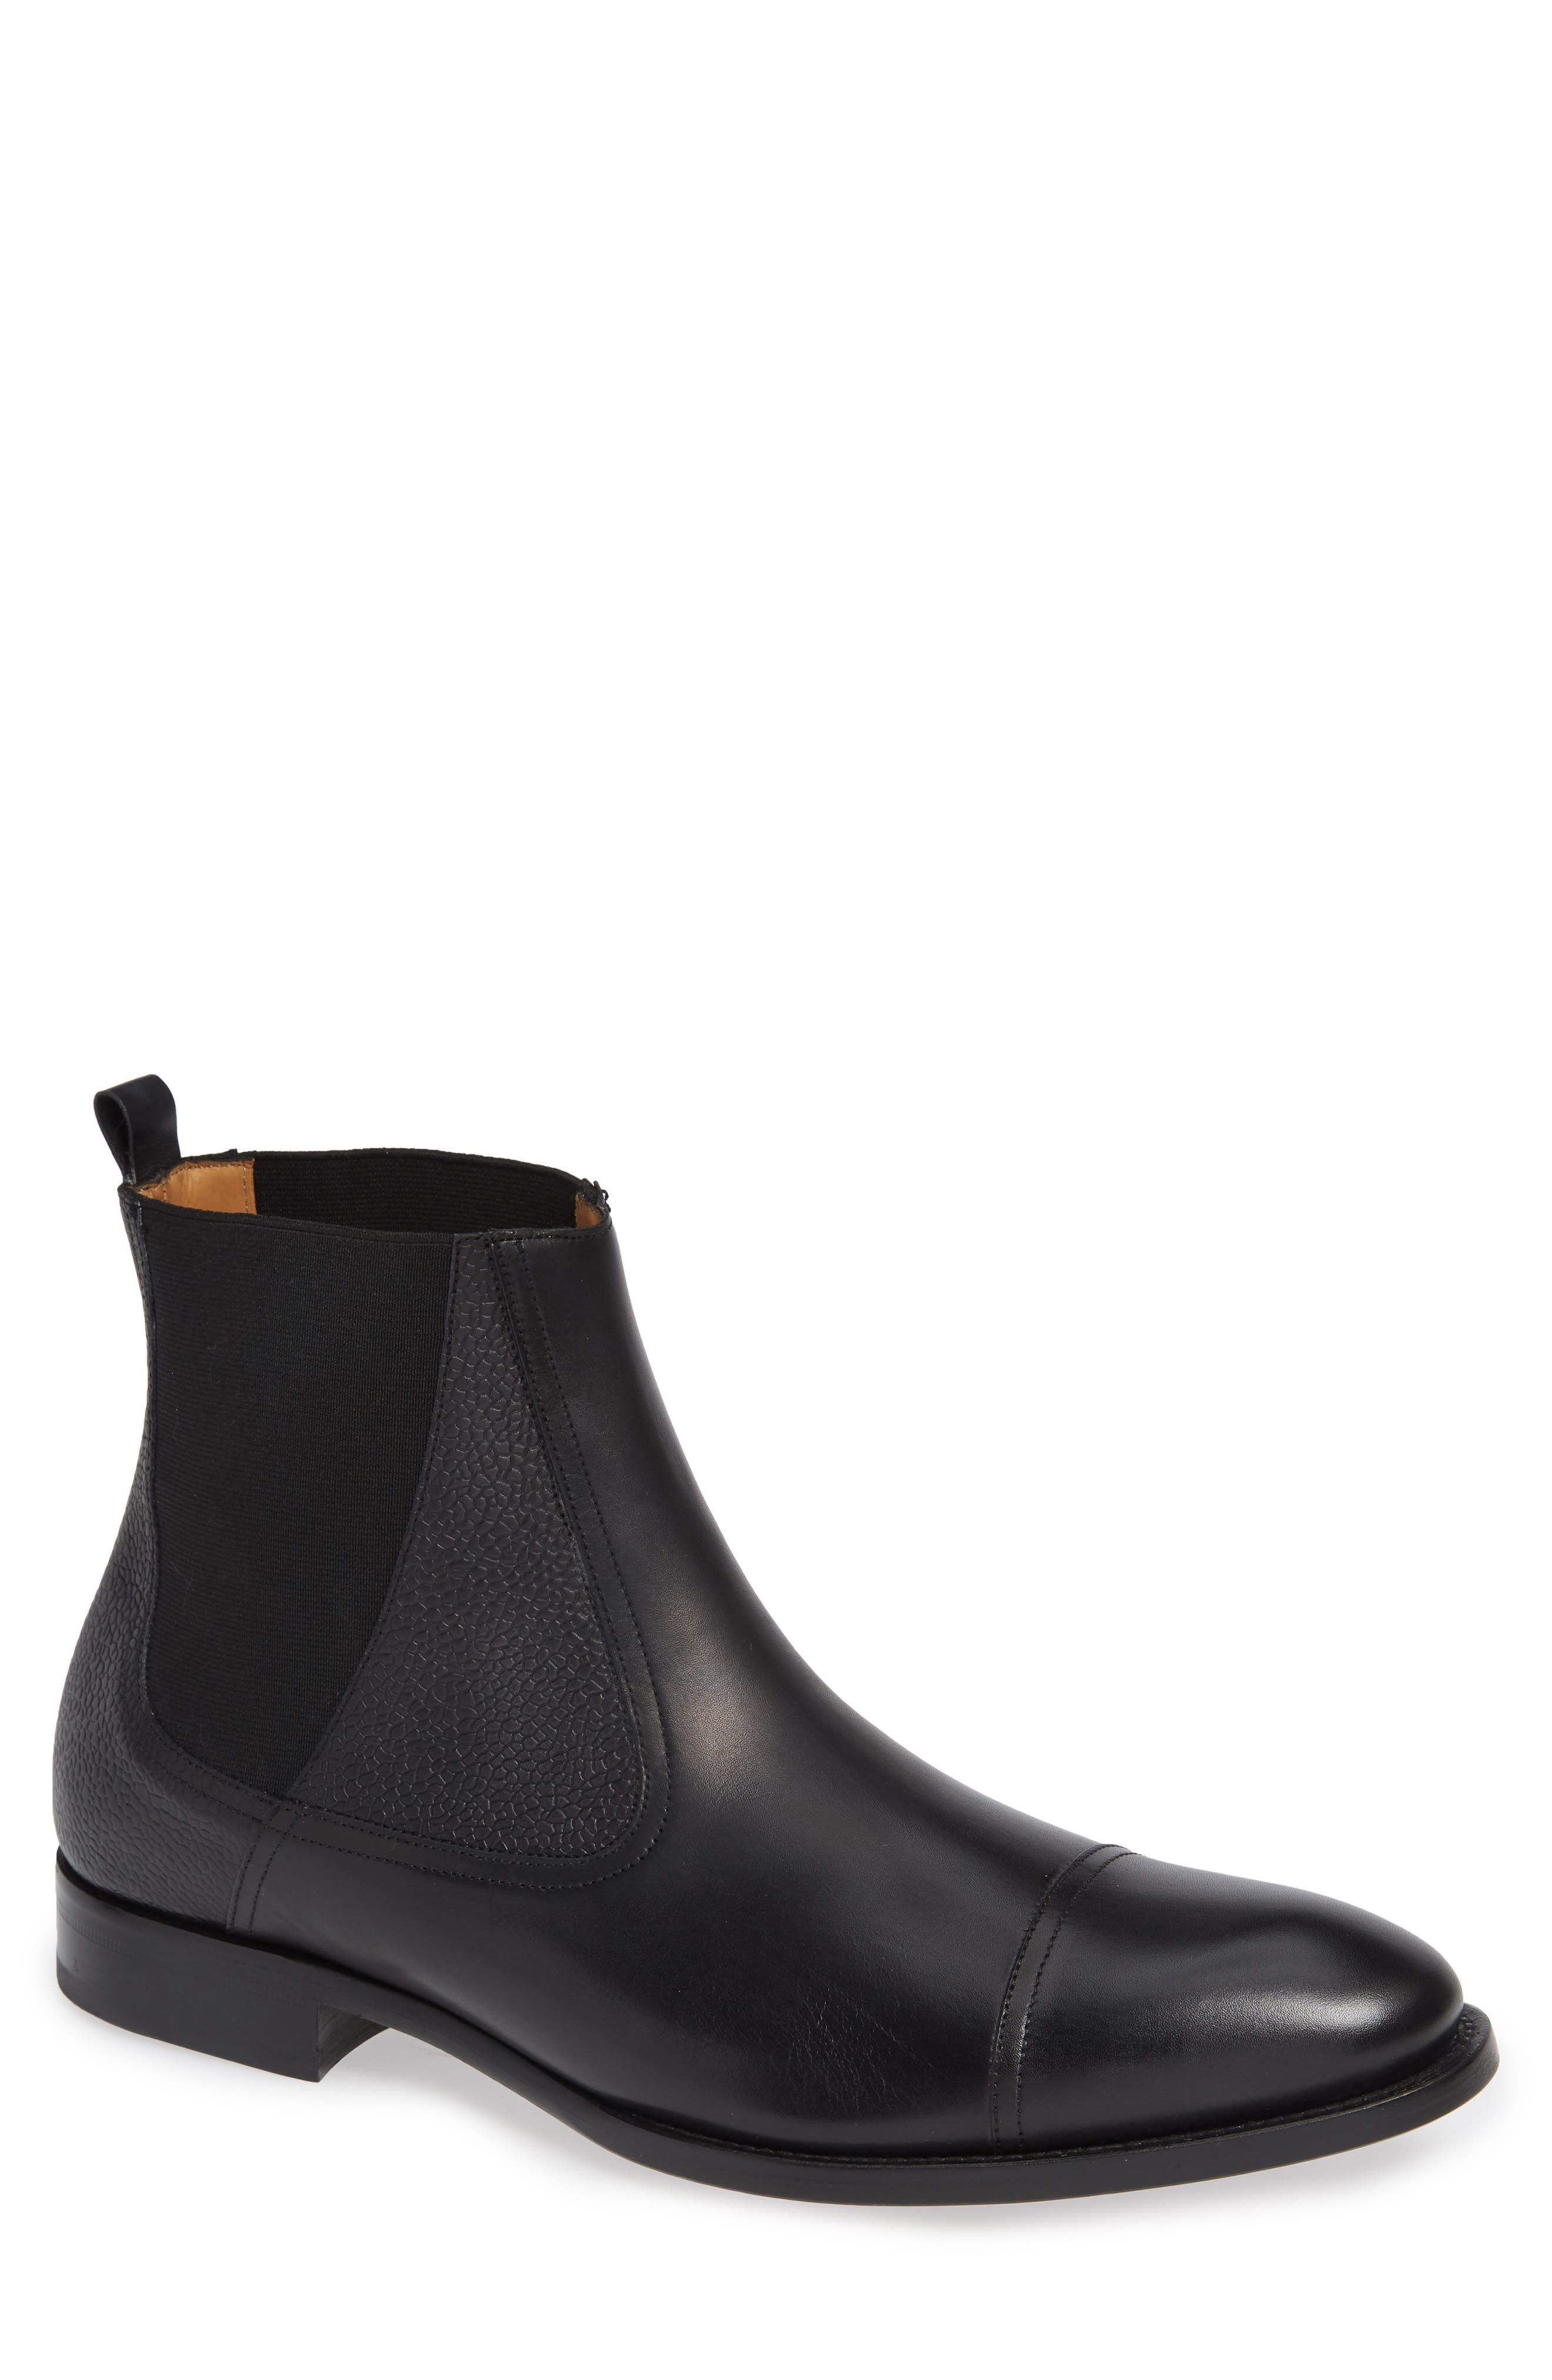 Mezlan Higgins Cap Toe Chelsea Boot- Black